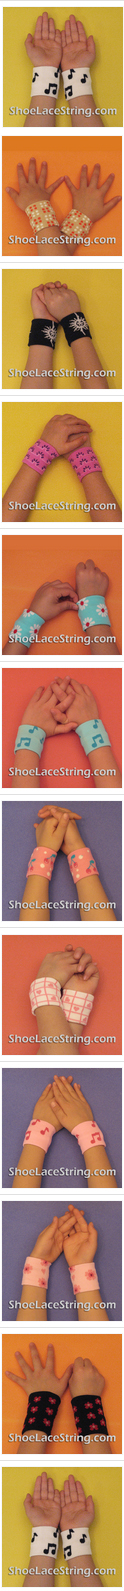 shoe lace shoe string kid's wrist band for party